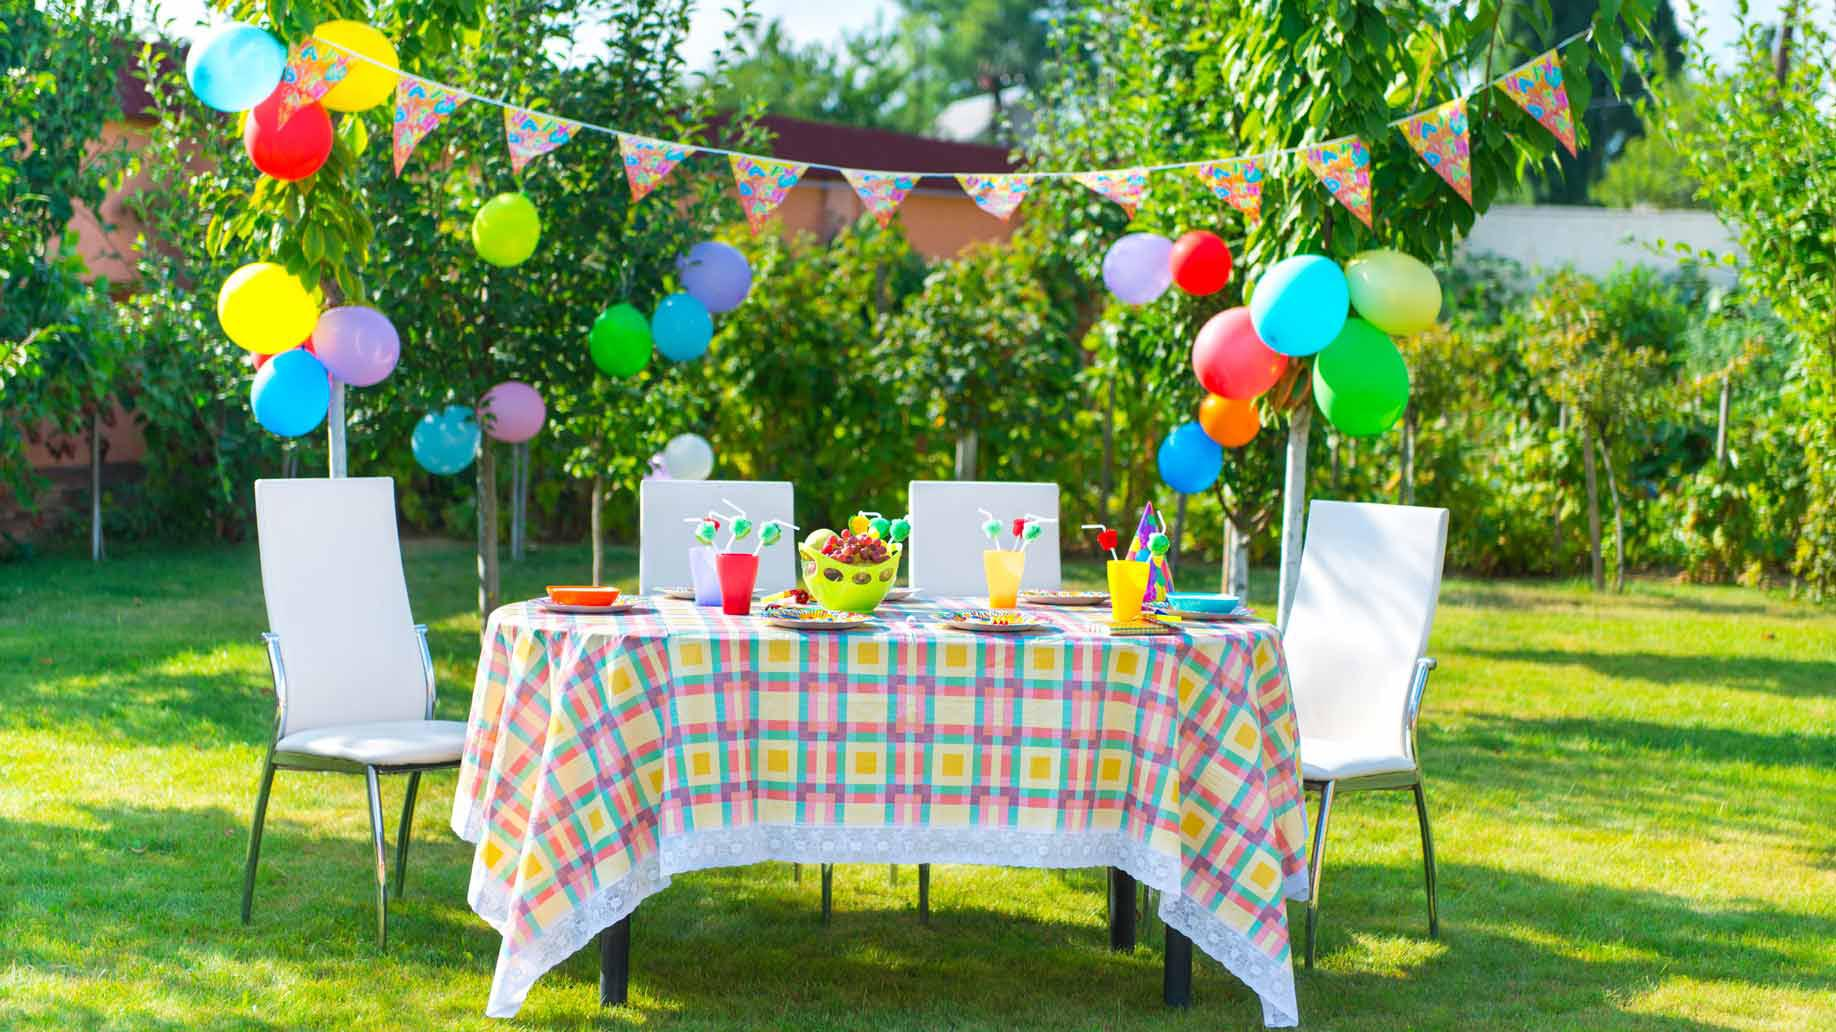 Admirable Birthday Party Games Outdoors Birthday Party Games Outdoors Home Party Ideas Birthday Party Games All Ages Birthday Party Games Adults Large Group art Birthday Party Games